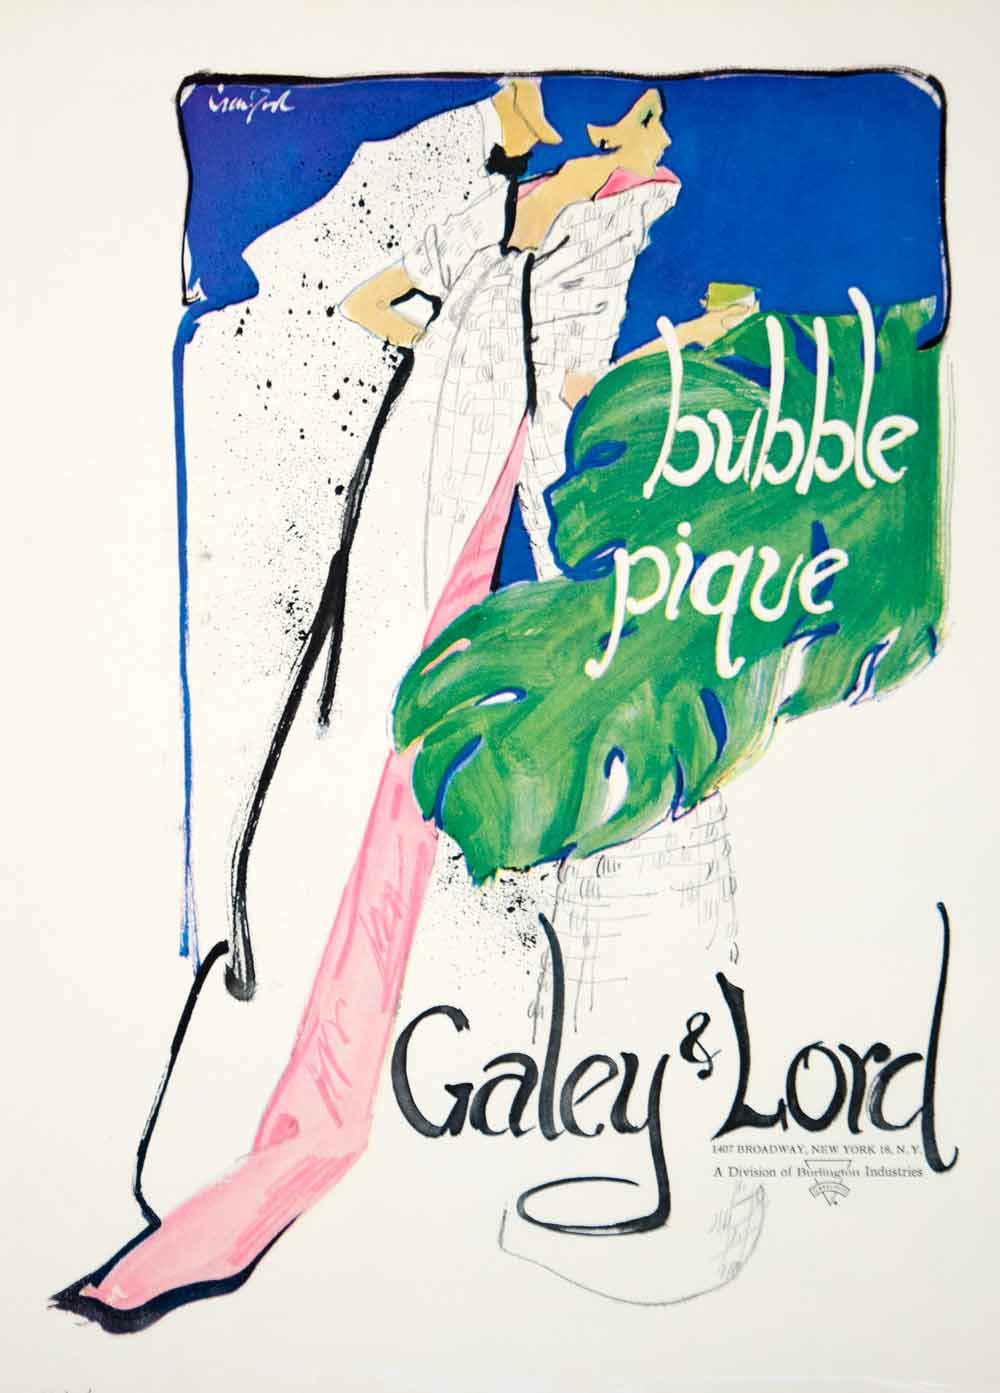 1963 Ad Vintage Galey Lord Bubble Pique Fabric J. Hyde Crawford Fashion Art YHB5